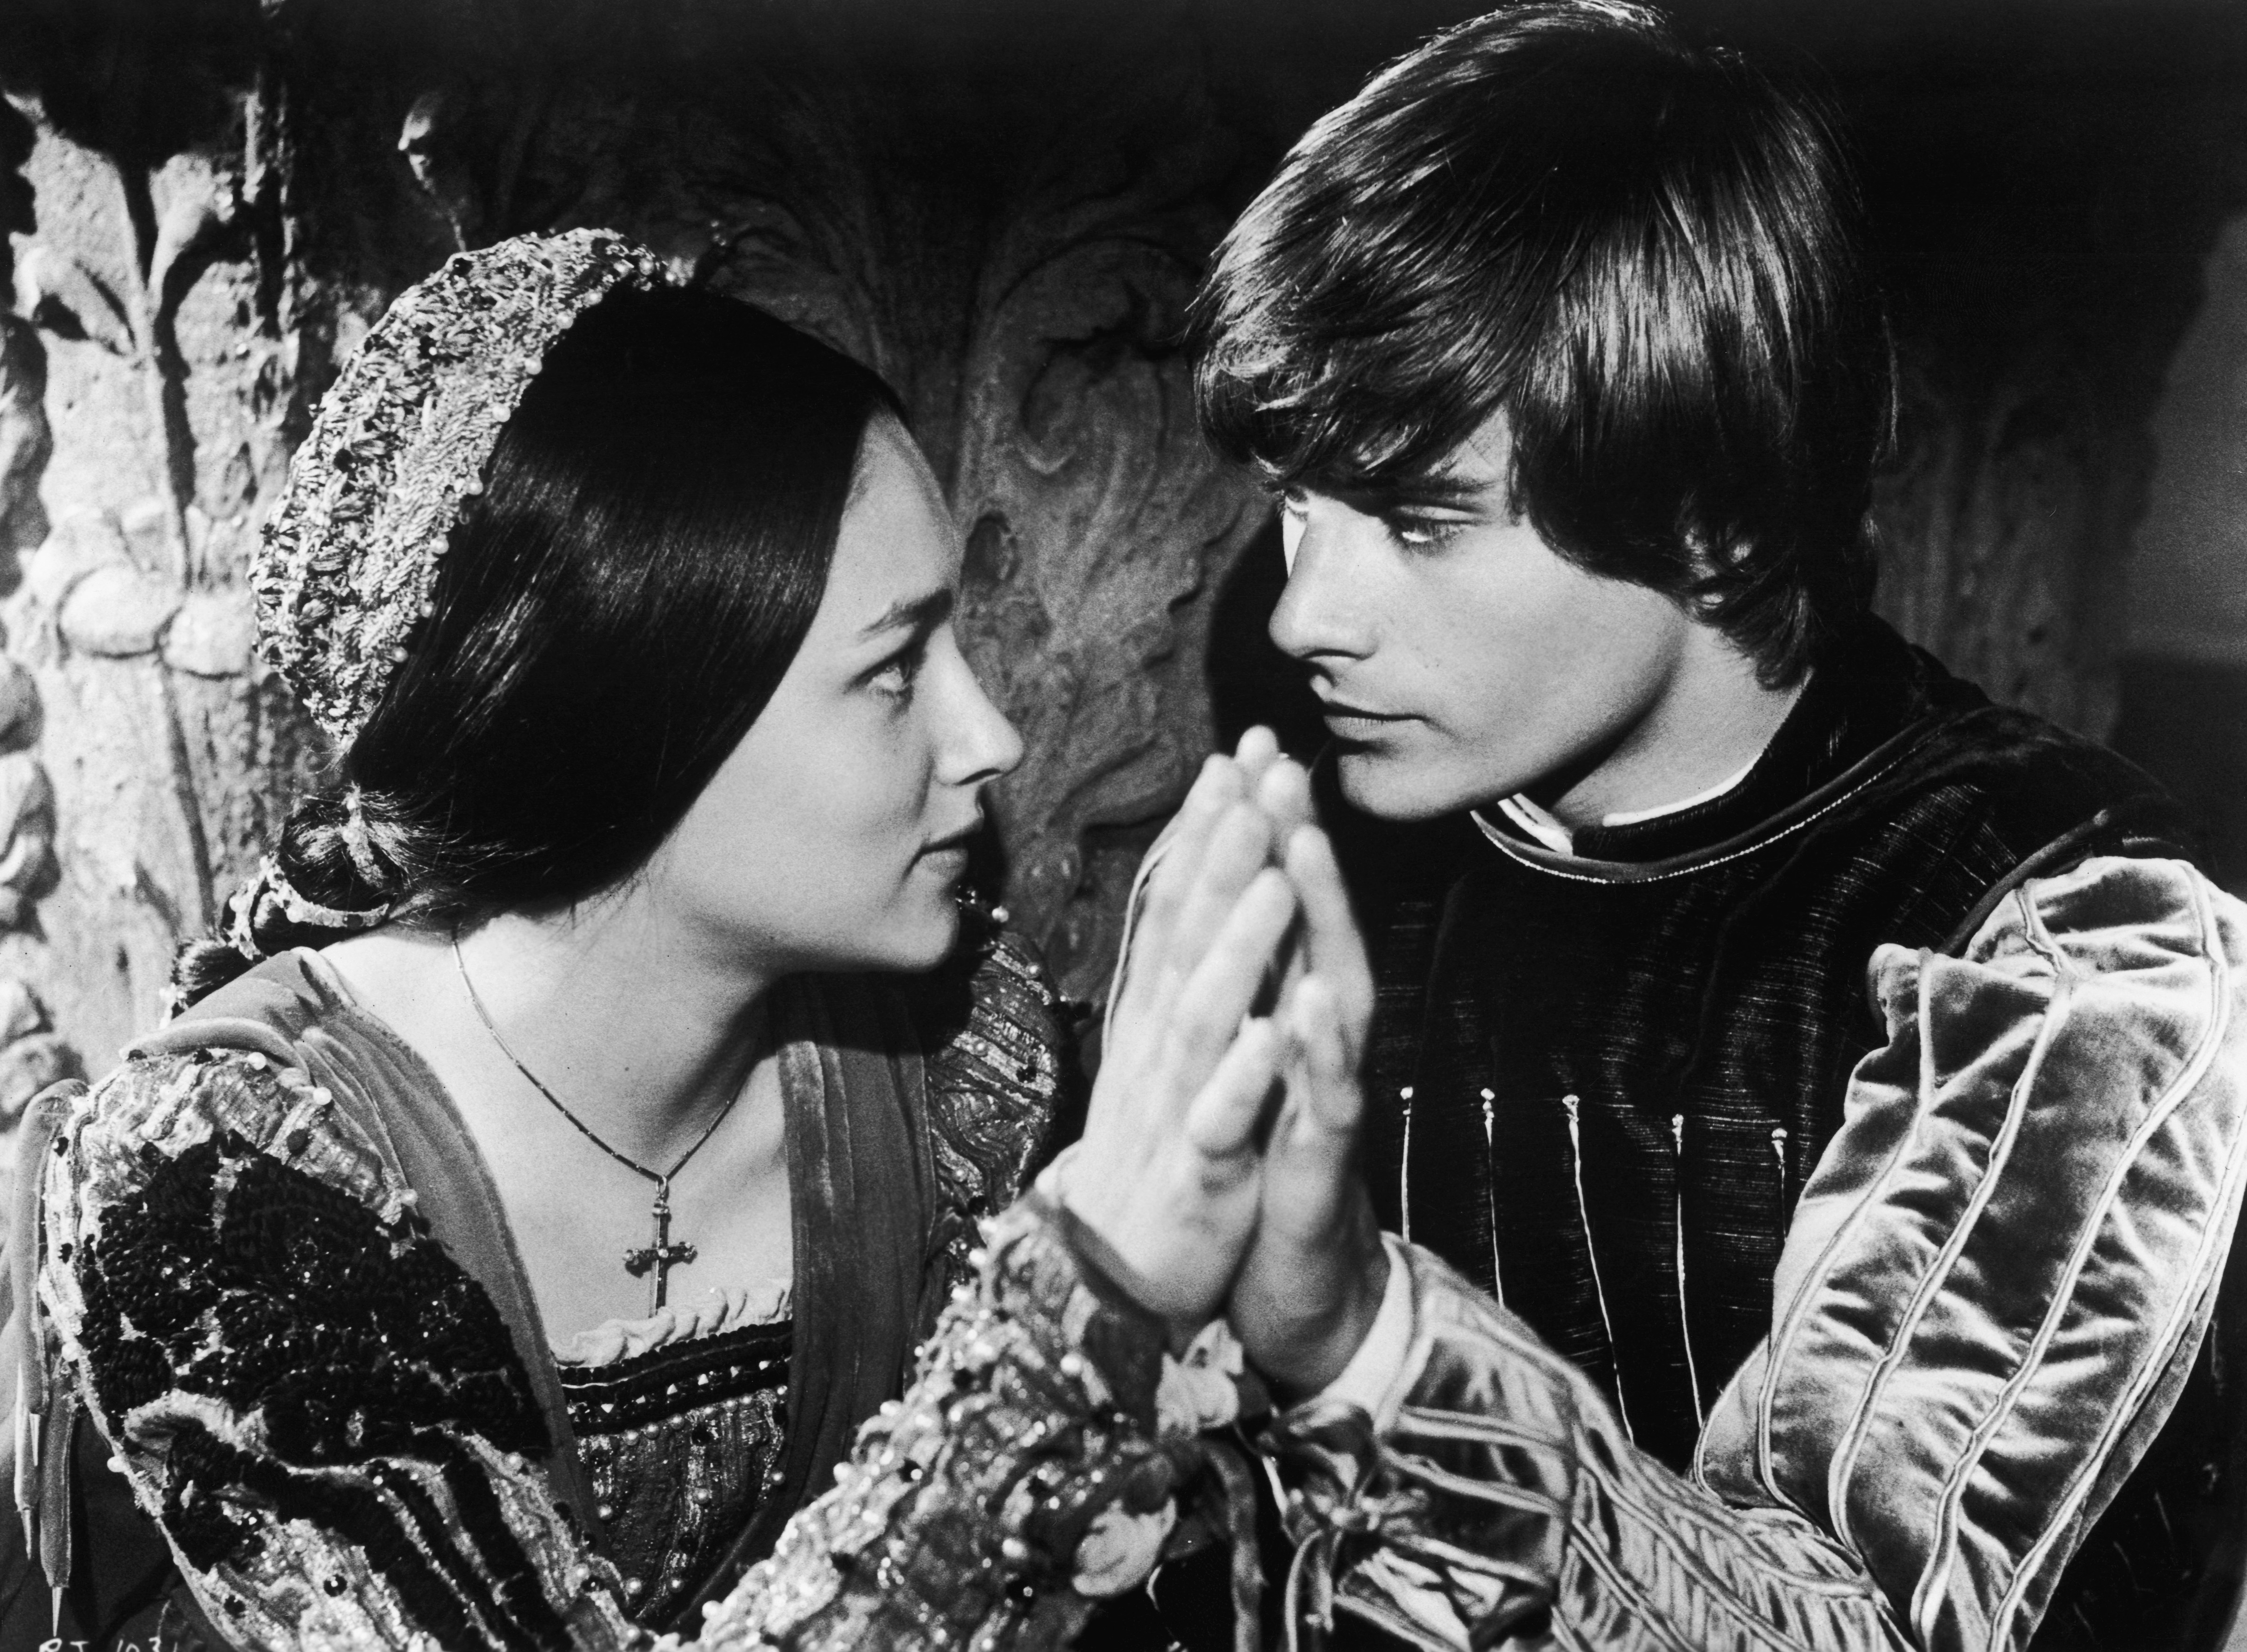 Leonard Whiting and Olivia Hussey in the title roles of Franco Zeffirelli's film version of Shakespeare's 'Romeo And Juliet', 1967. (Photo by Hulton Archive/Getty Images)